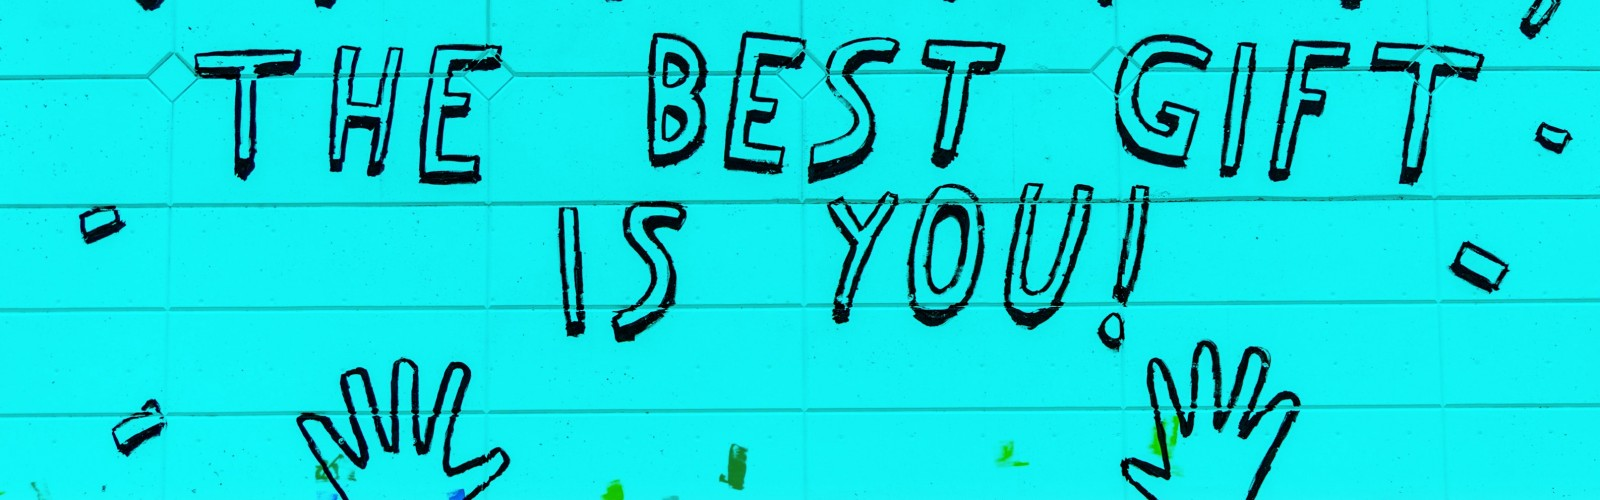 Best Gift is You!